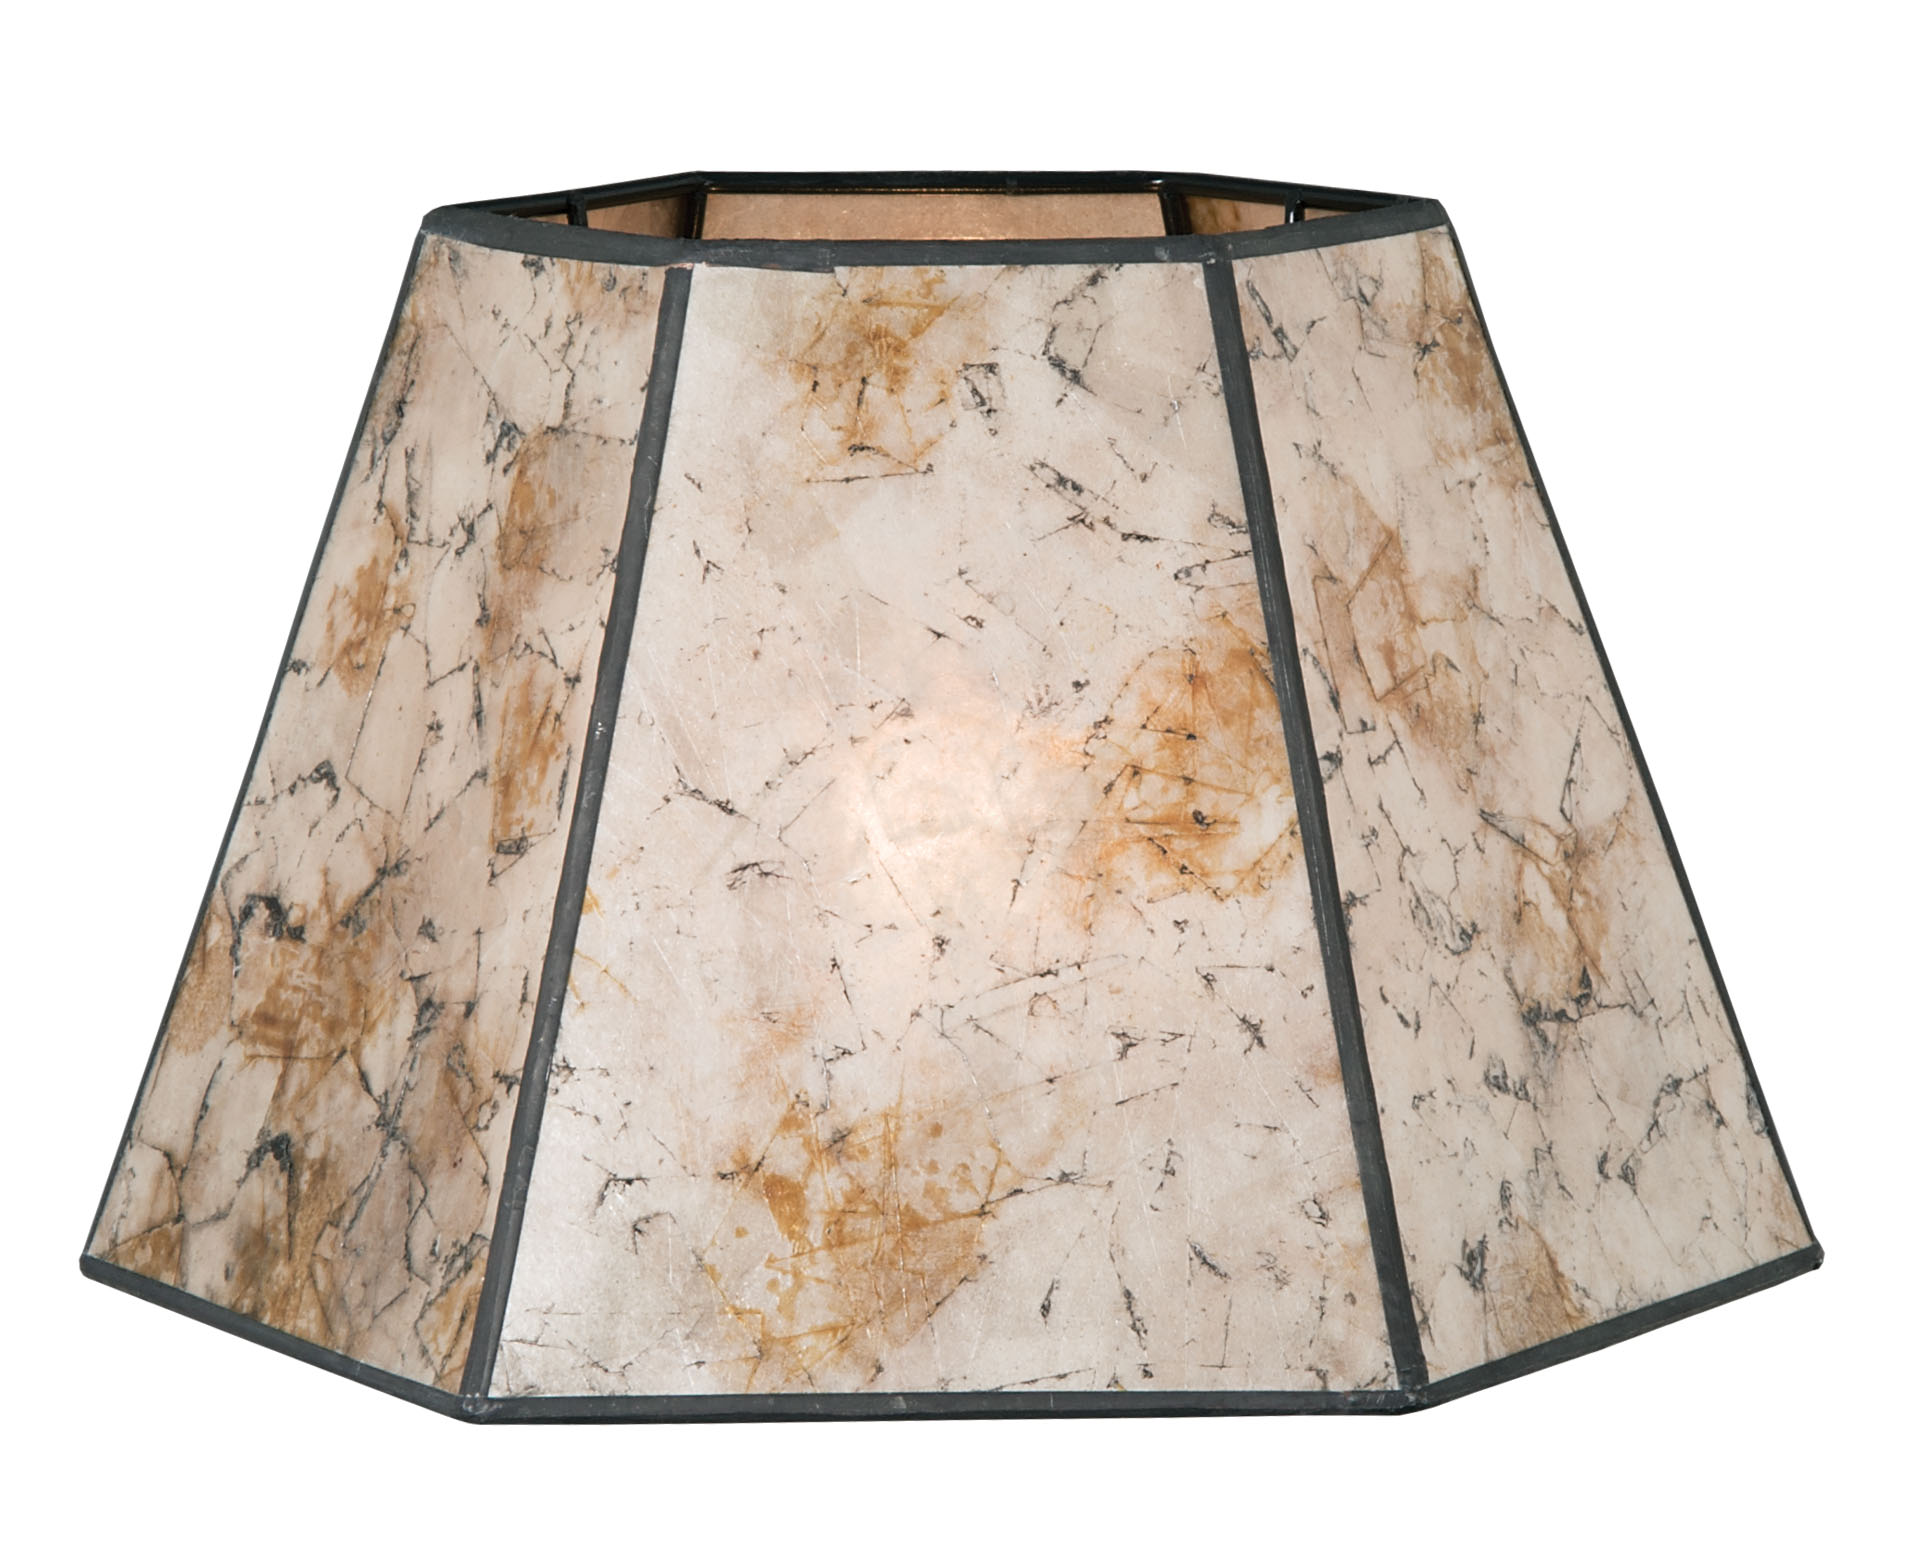 Onyx Color Hexagon Style Mica Lampshade 05702s B Amp P Lamp